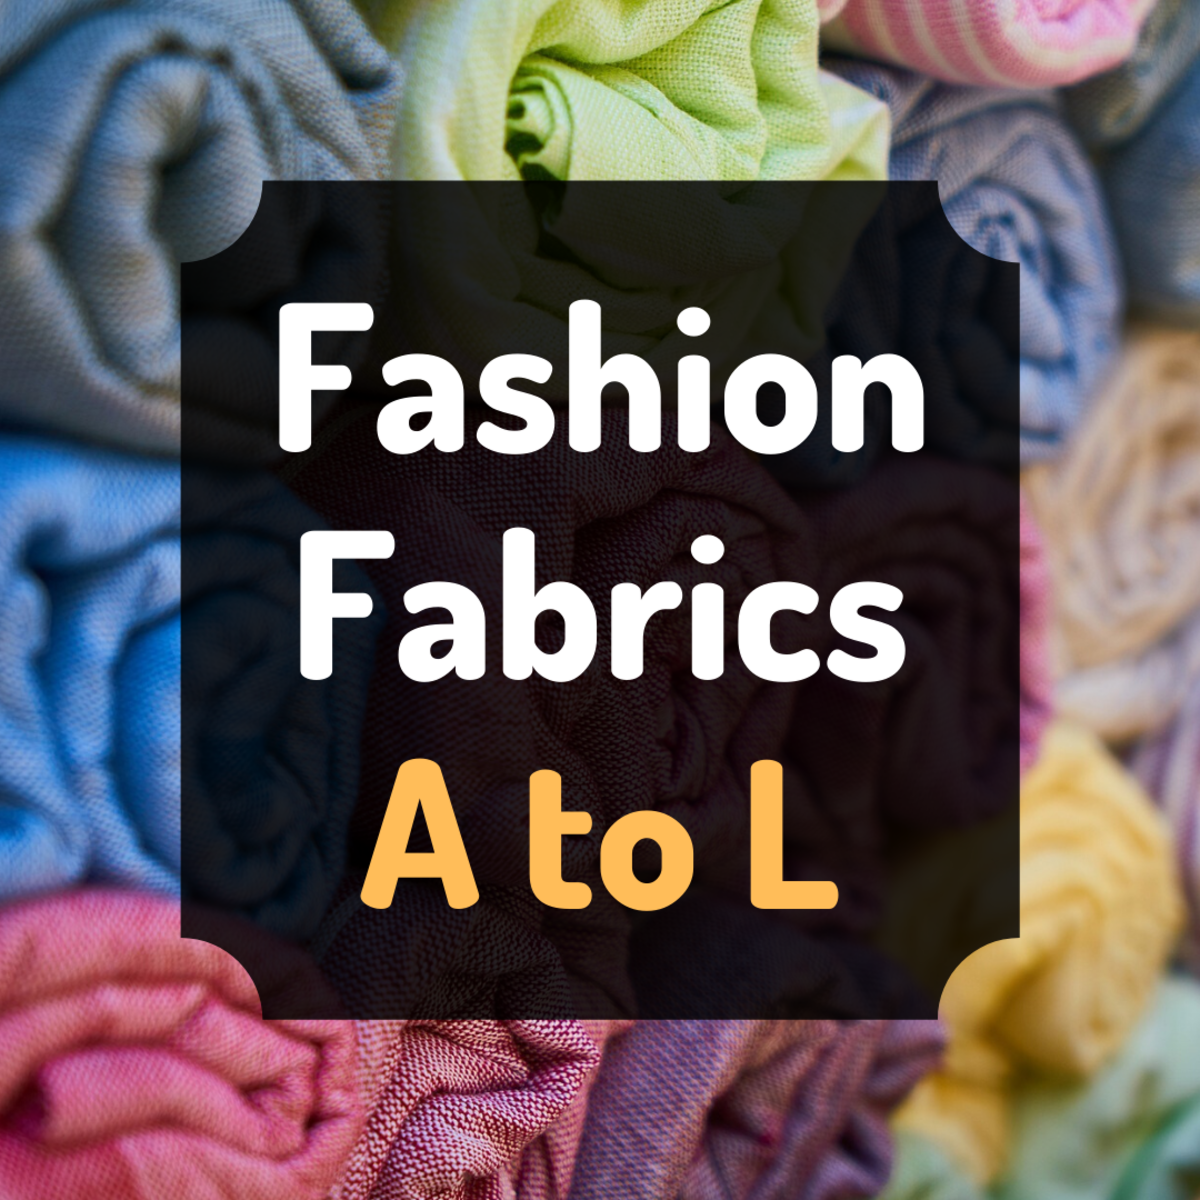 List of the Most Commonly Used Fabrics in Fashion (A to L)